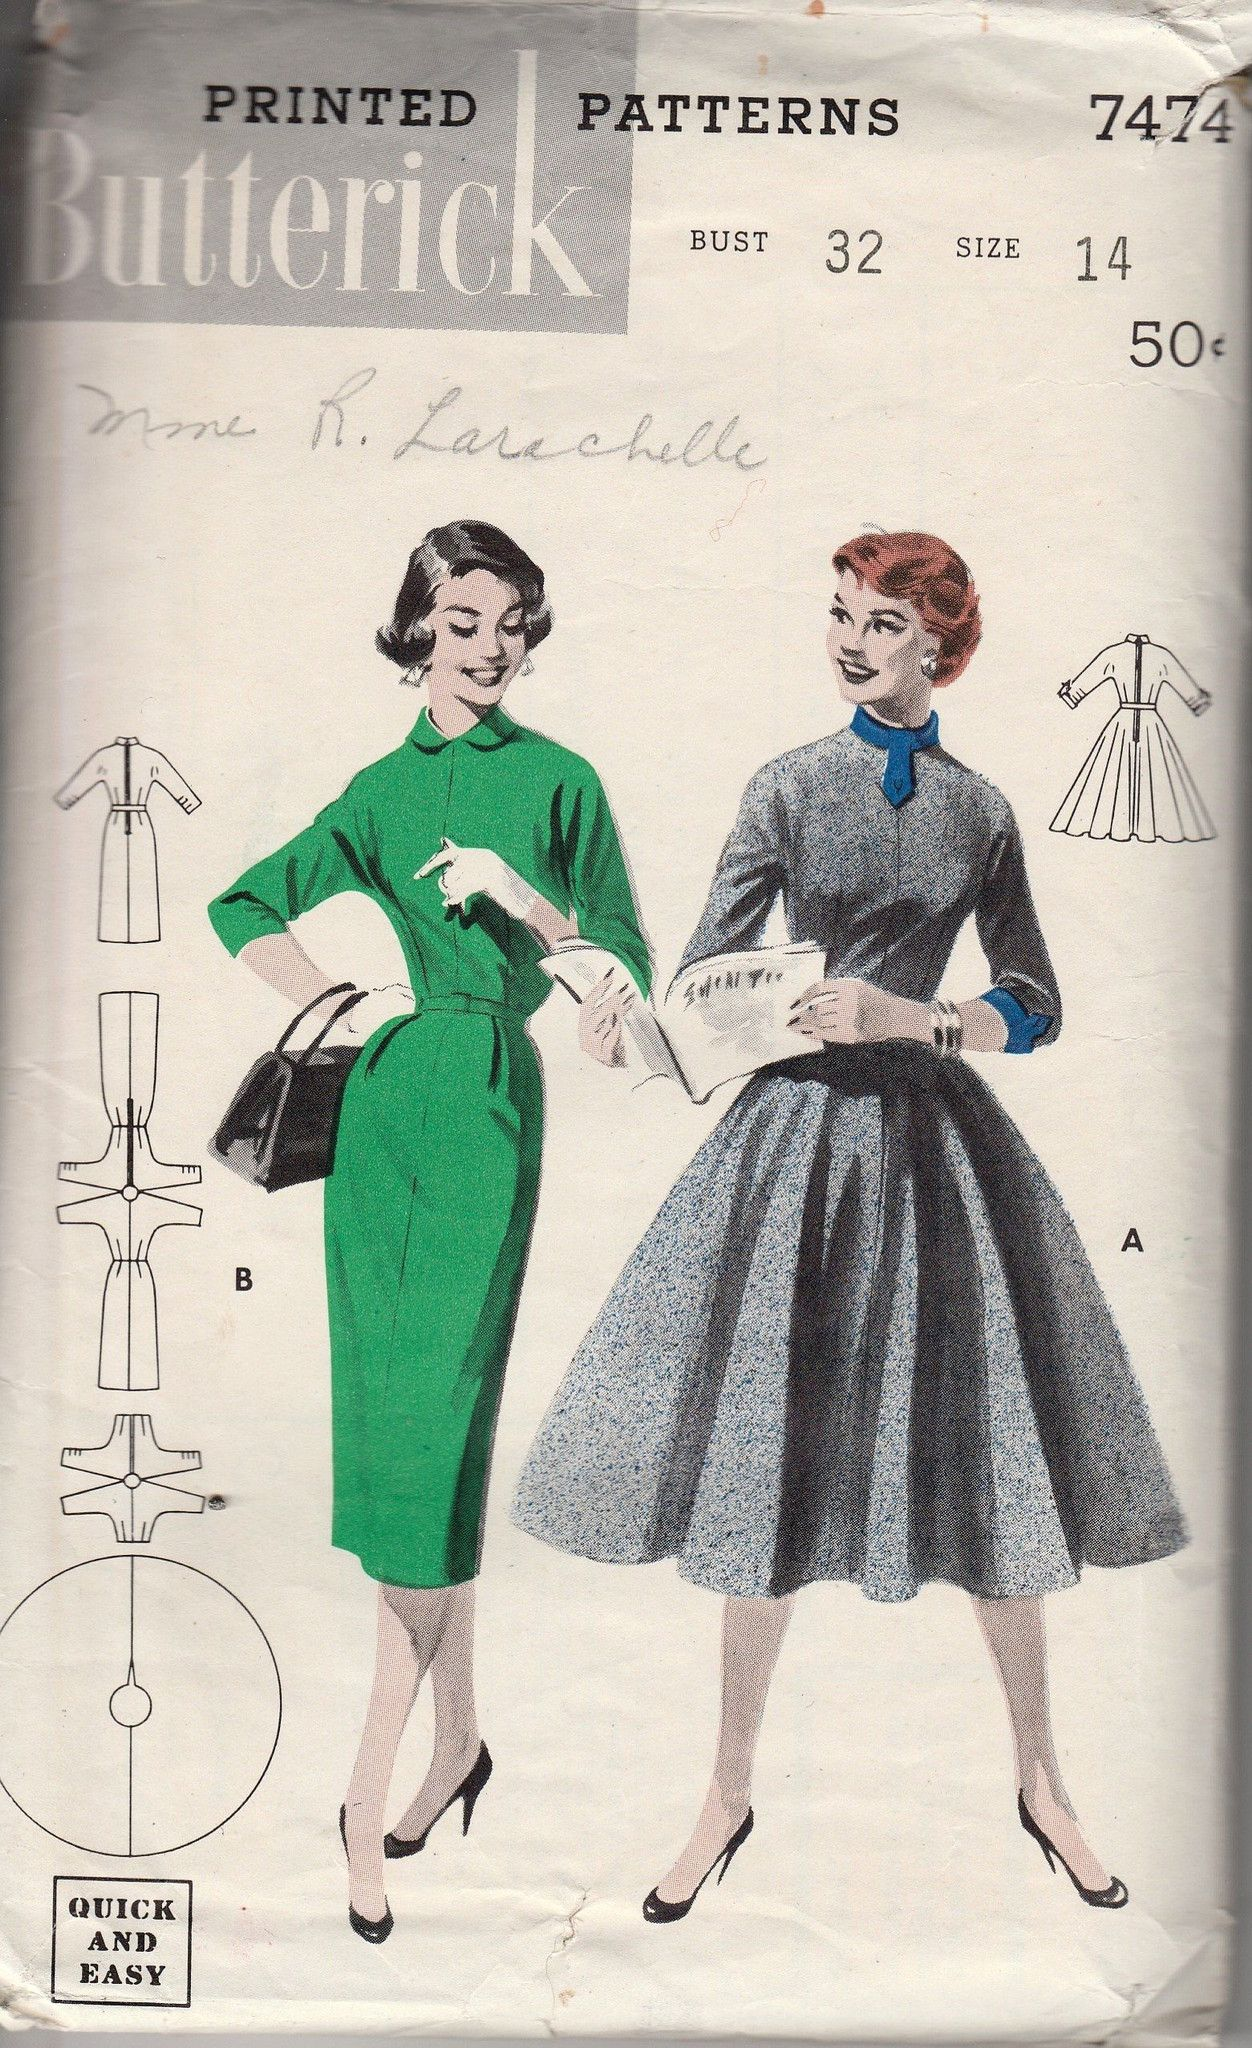 Butterick 7474 ladies dress vintage 1940s sewing pattern quick n butterick 7474 ladies dress vintage 1940s sewing pattern quick n easy jeuxipadfo Choice Image